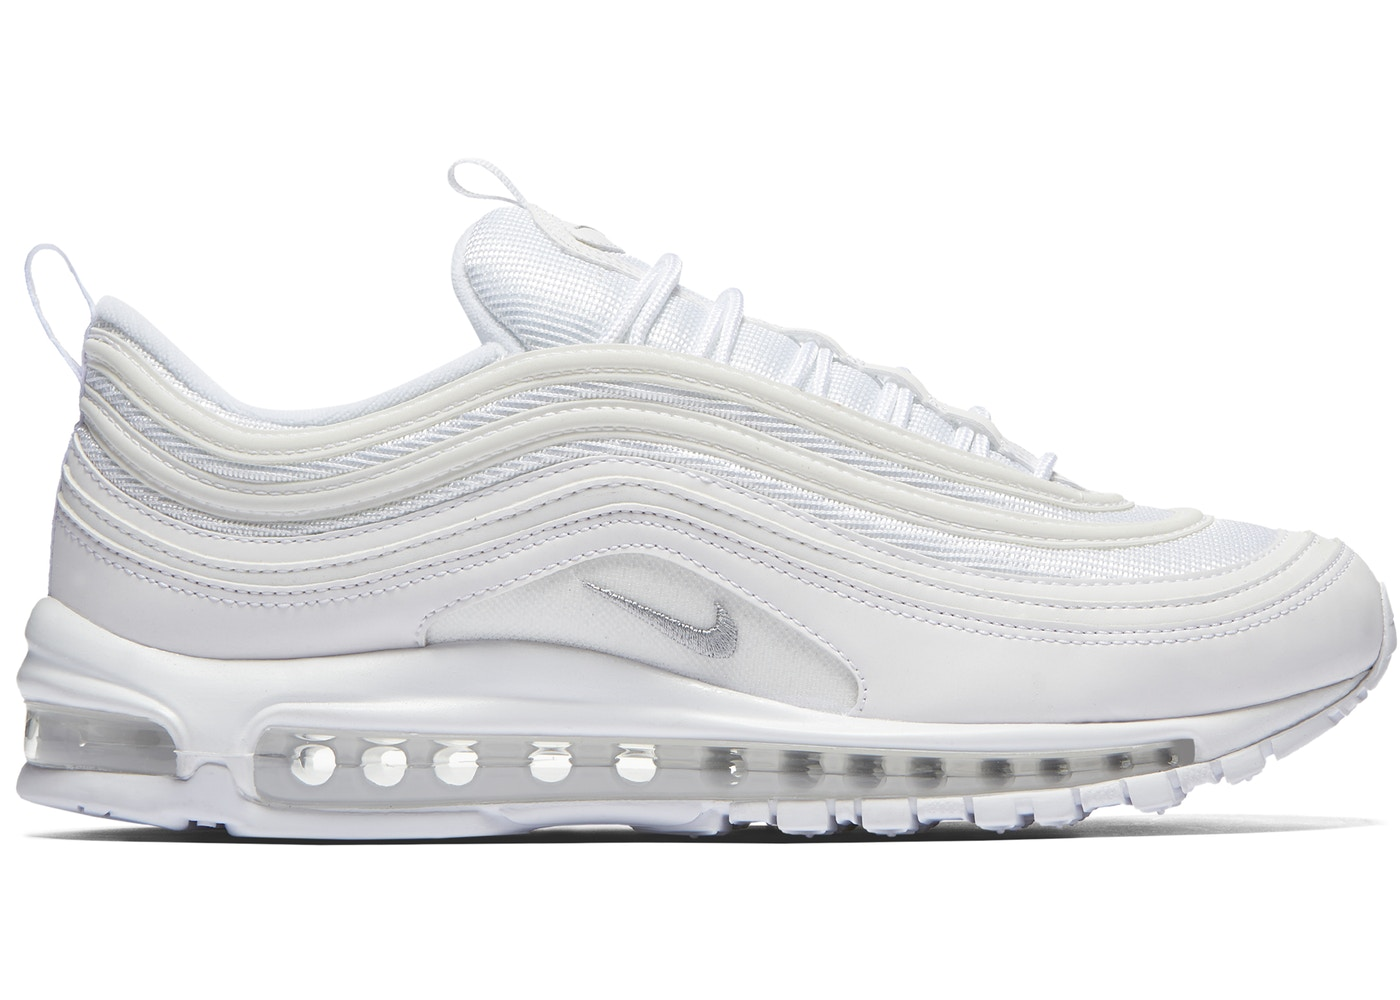 nike air max 97 white and black